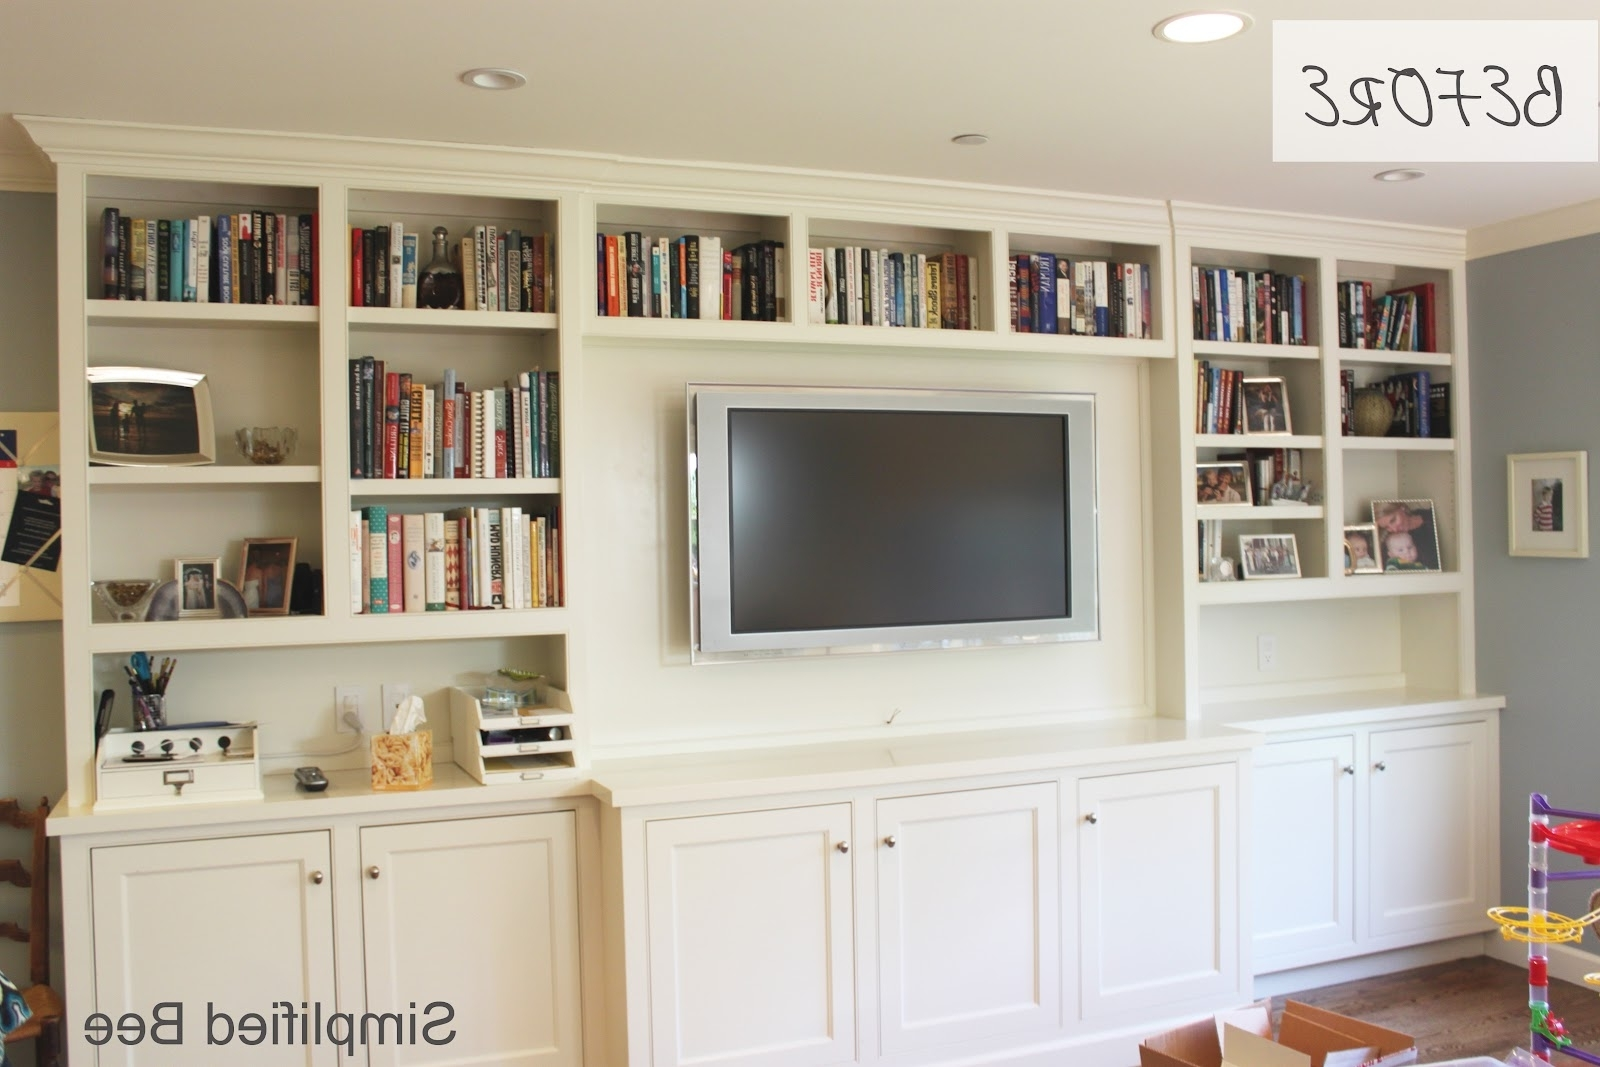 Bookshelf Styling: Before & After – Michaela Noelle Designs Inside Most Recent Built In Bookshelves With Tv (View 4 of 15)